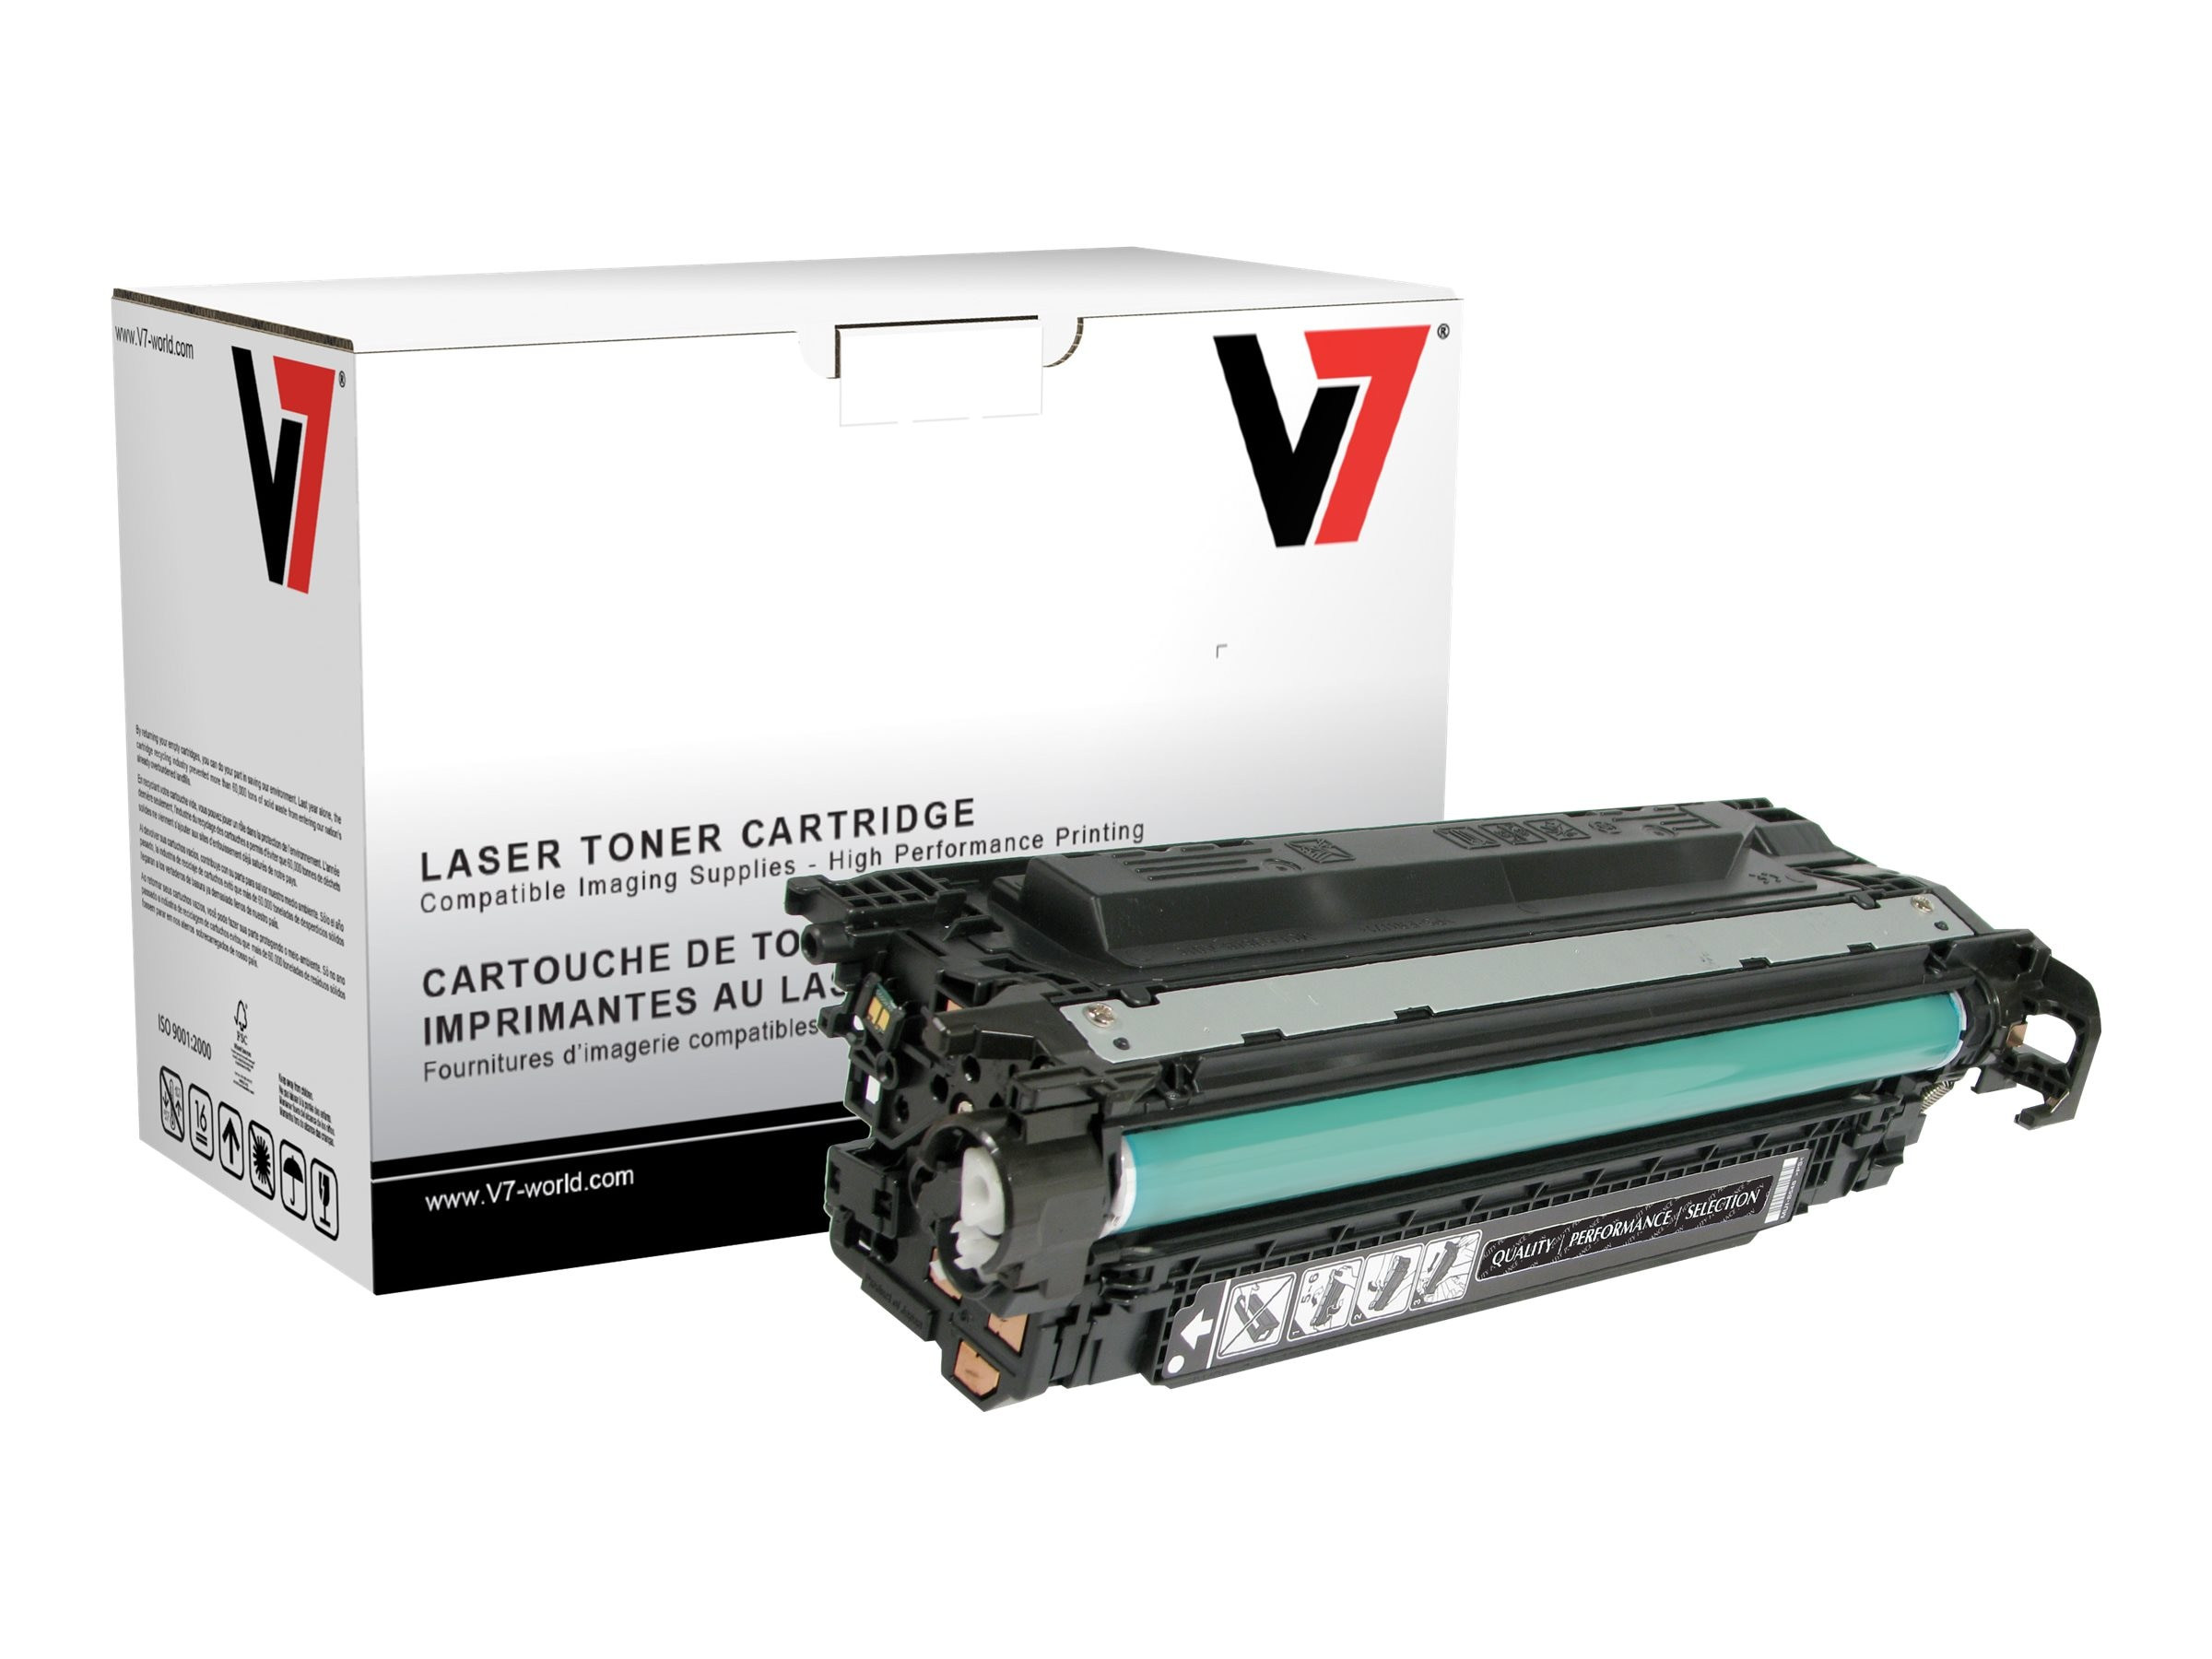 V7 CE250A Black Toner Cartridge for HP LaserJet CP3525 (TAA Compliant)